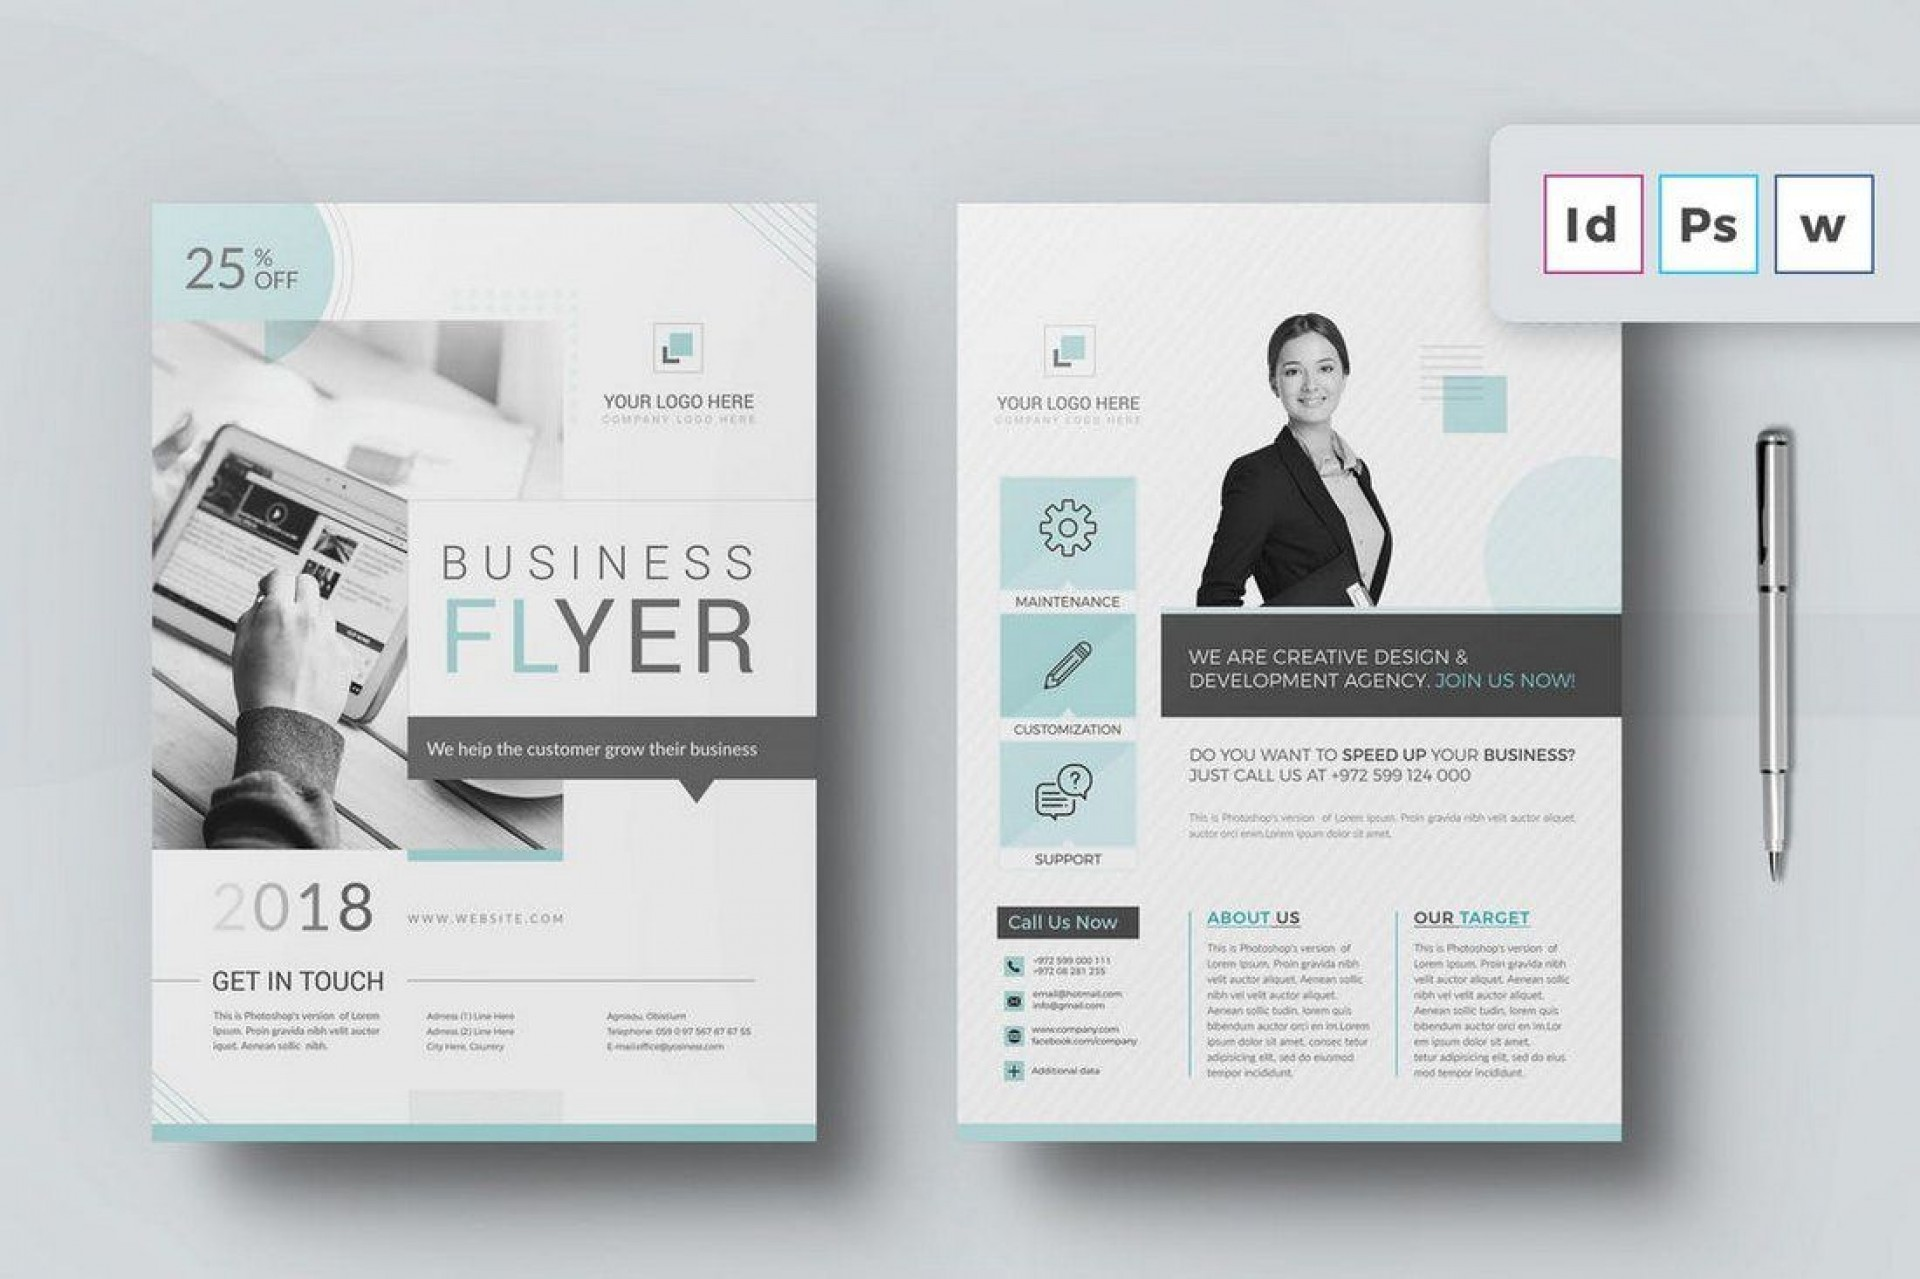 007 Marvelou Microsoft Word Brochure Template Example  M Free Download Design 2007 A41920